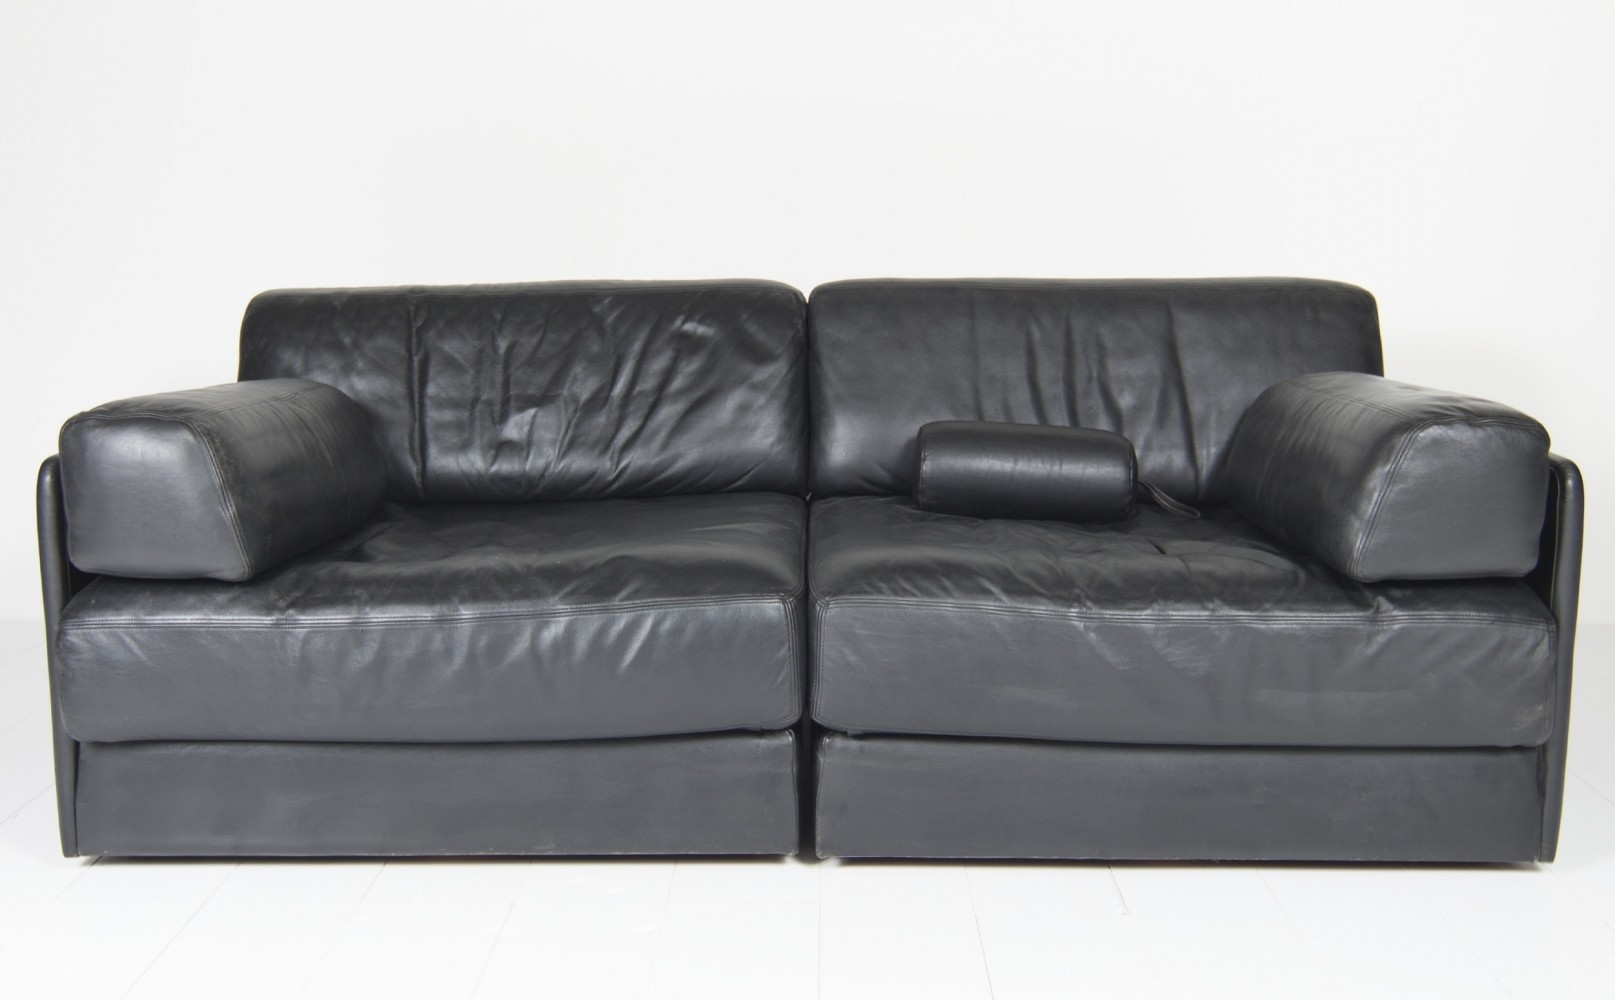 ds 76 sofa by de sede design team for de sede 1970s 59703. Black Bedroom Furniture Sets. Home Design Ideas